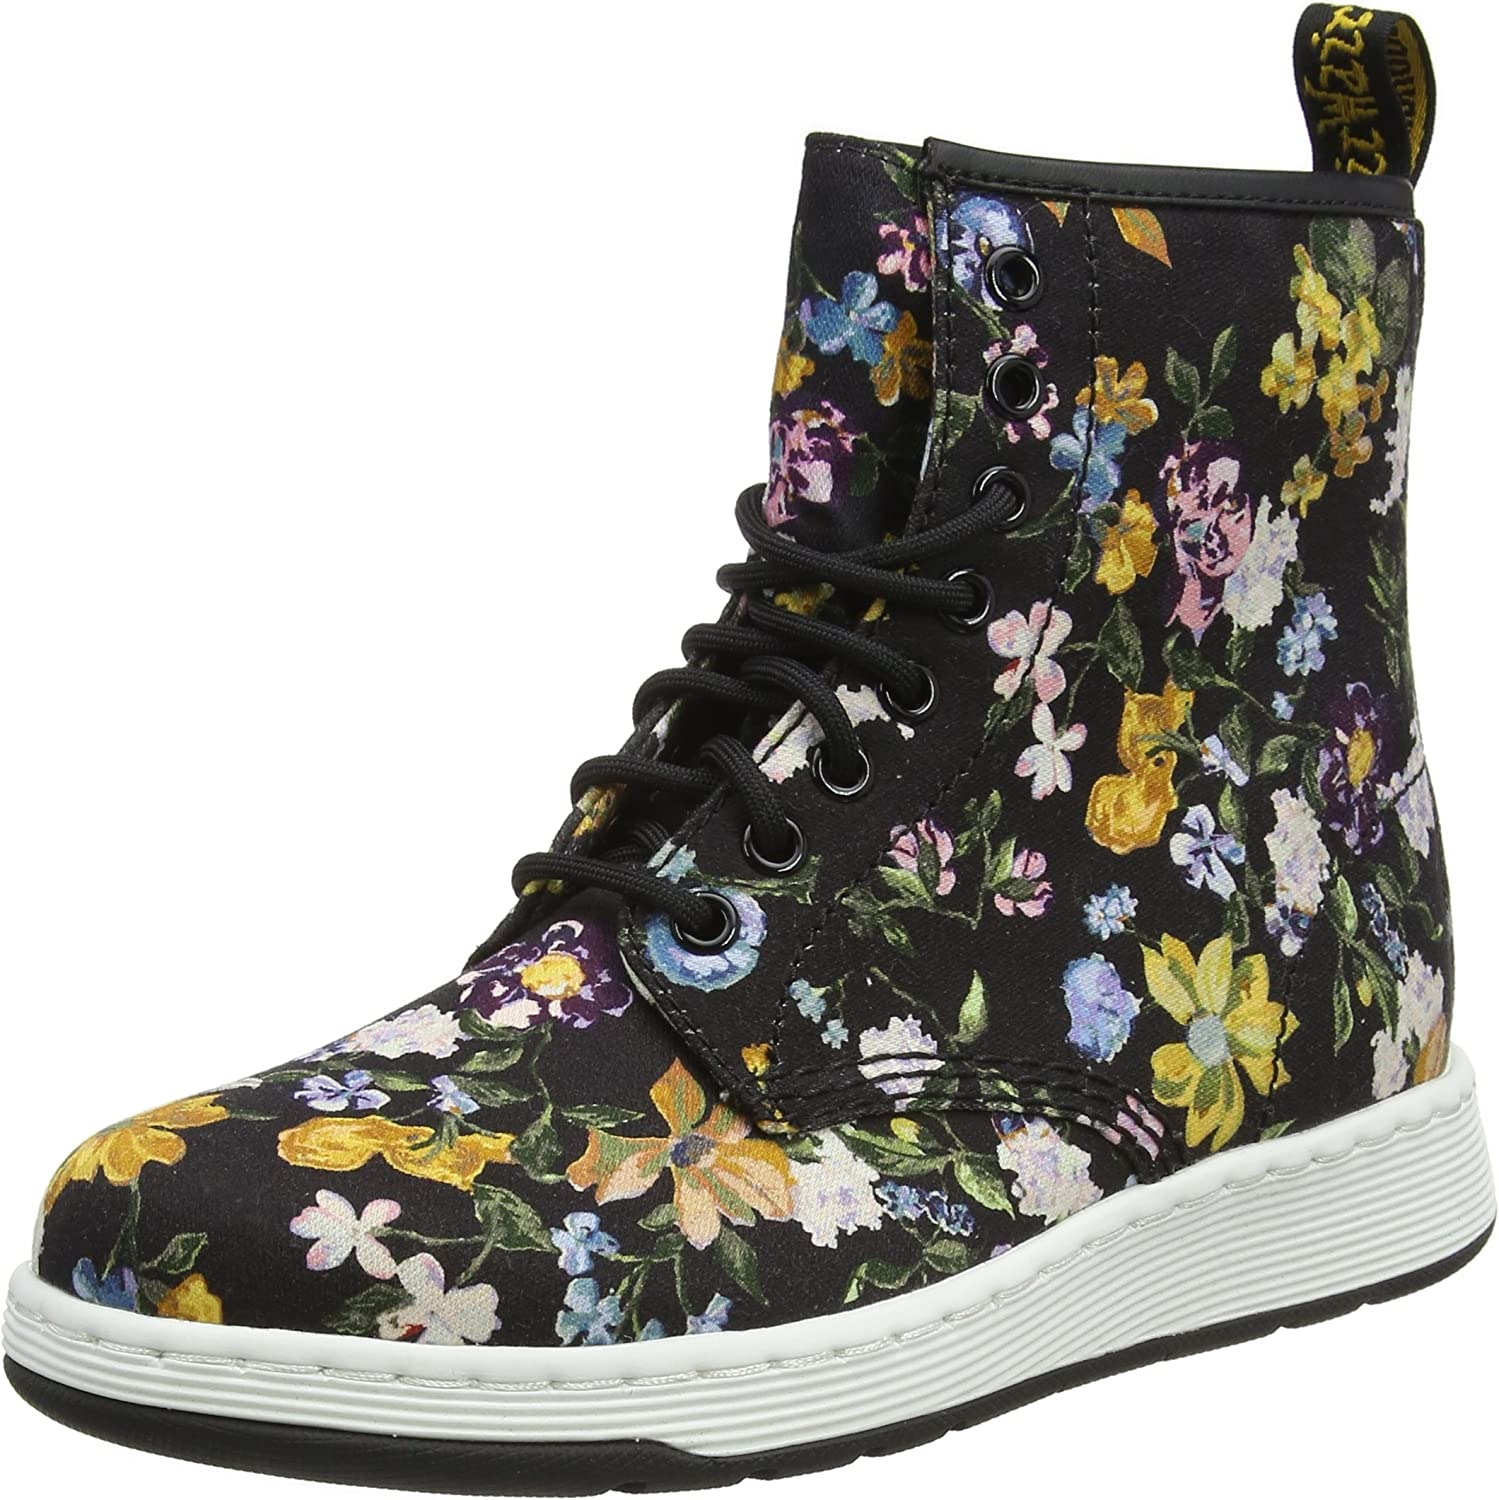 Dr. Martens Womens Newton DF Fashion Boot